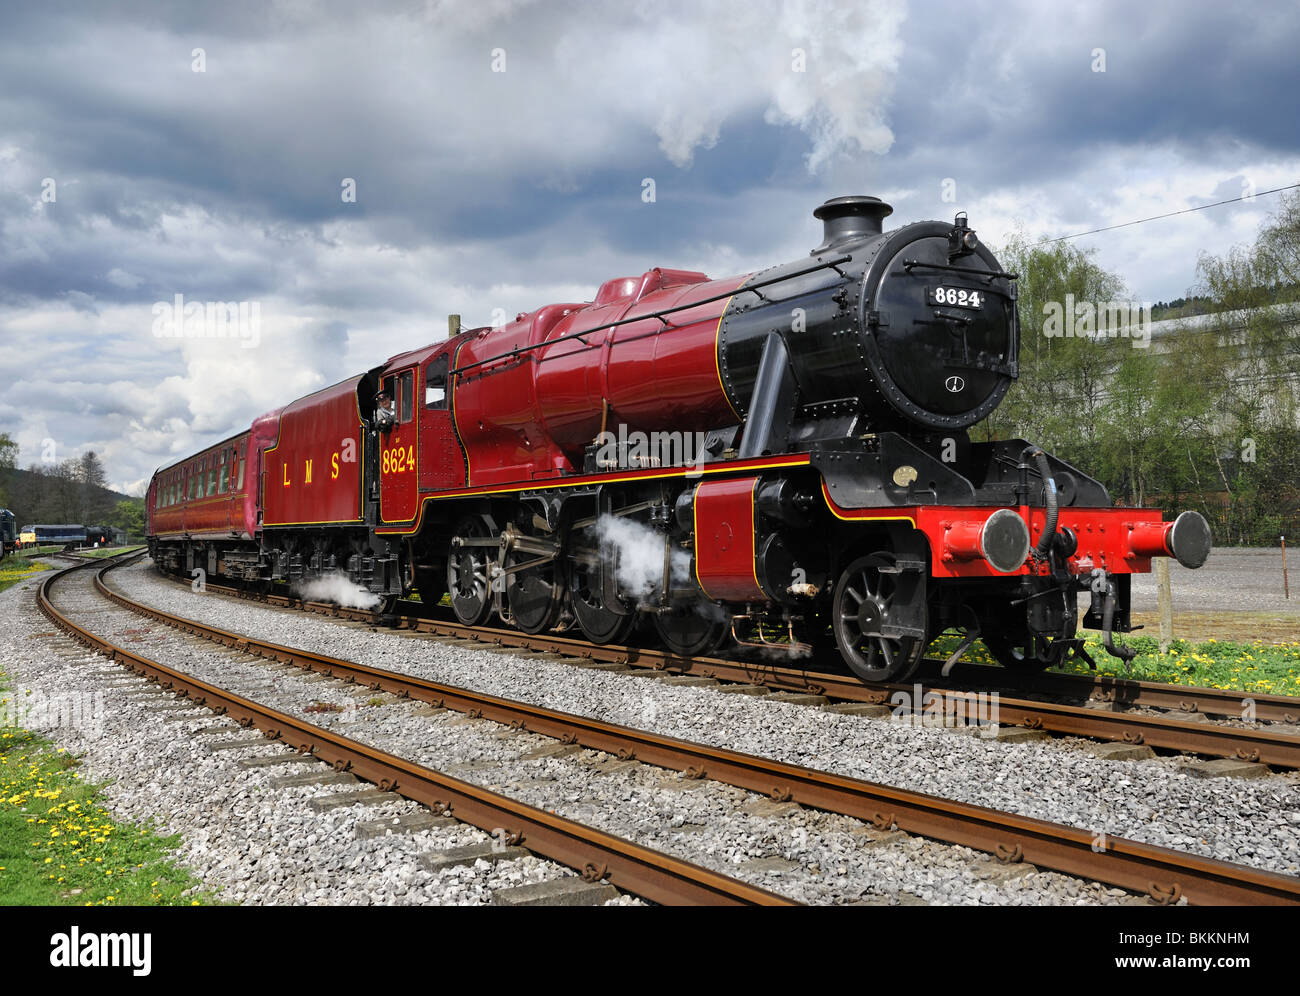 1943 Stanier 8F Steam Locomotive, No.8624, with train of carriages, Peak Rail centre, South Rowsley, Derbyshire. - Stock Image